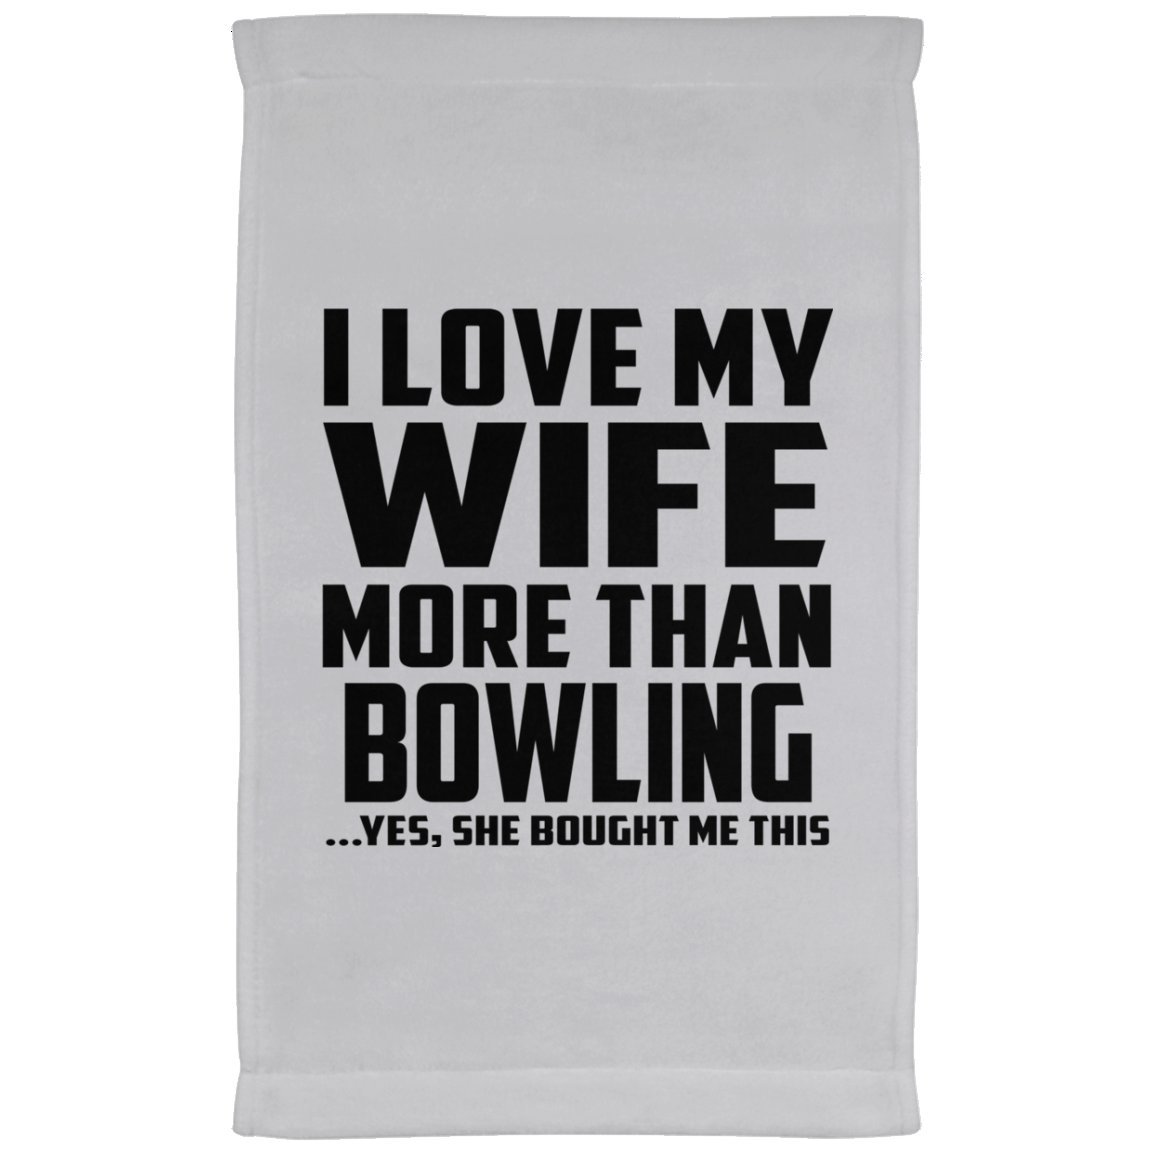 Designsify Husband Towel, I Love My Wife More Than Bowling.Yes, She Bought Me This - Kitchen Towel, Microfiber Velour Towel, Best Gift for Husband, Him, Men, Man from Wife, Men, Lover